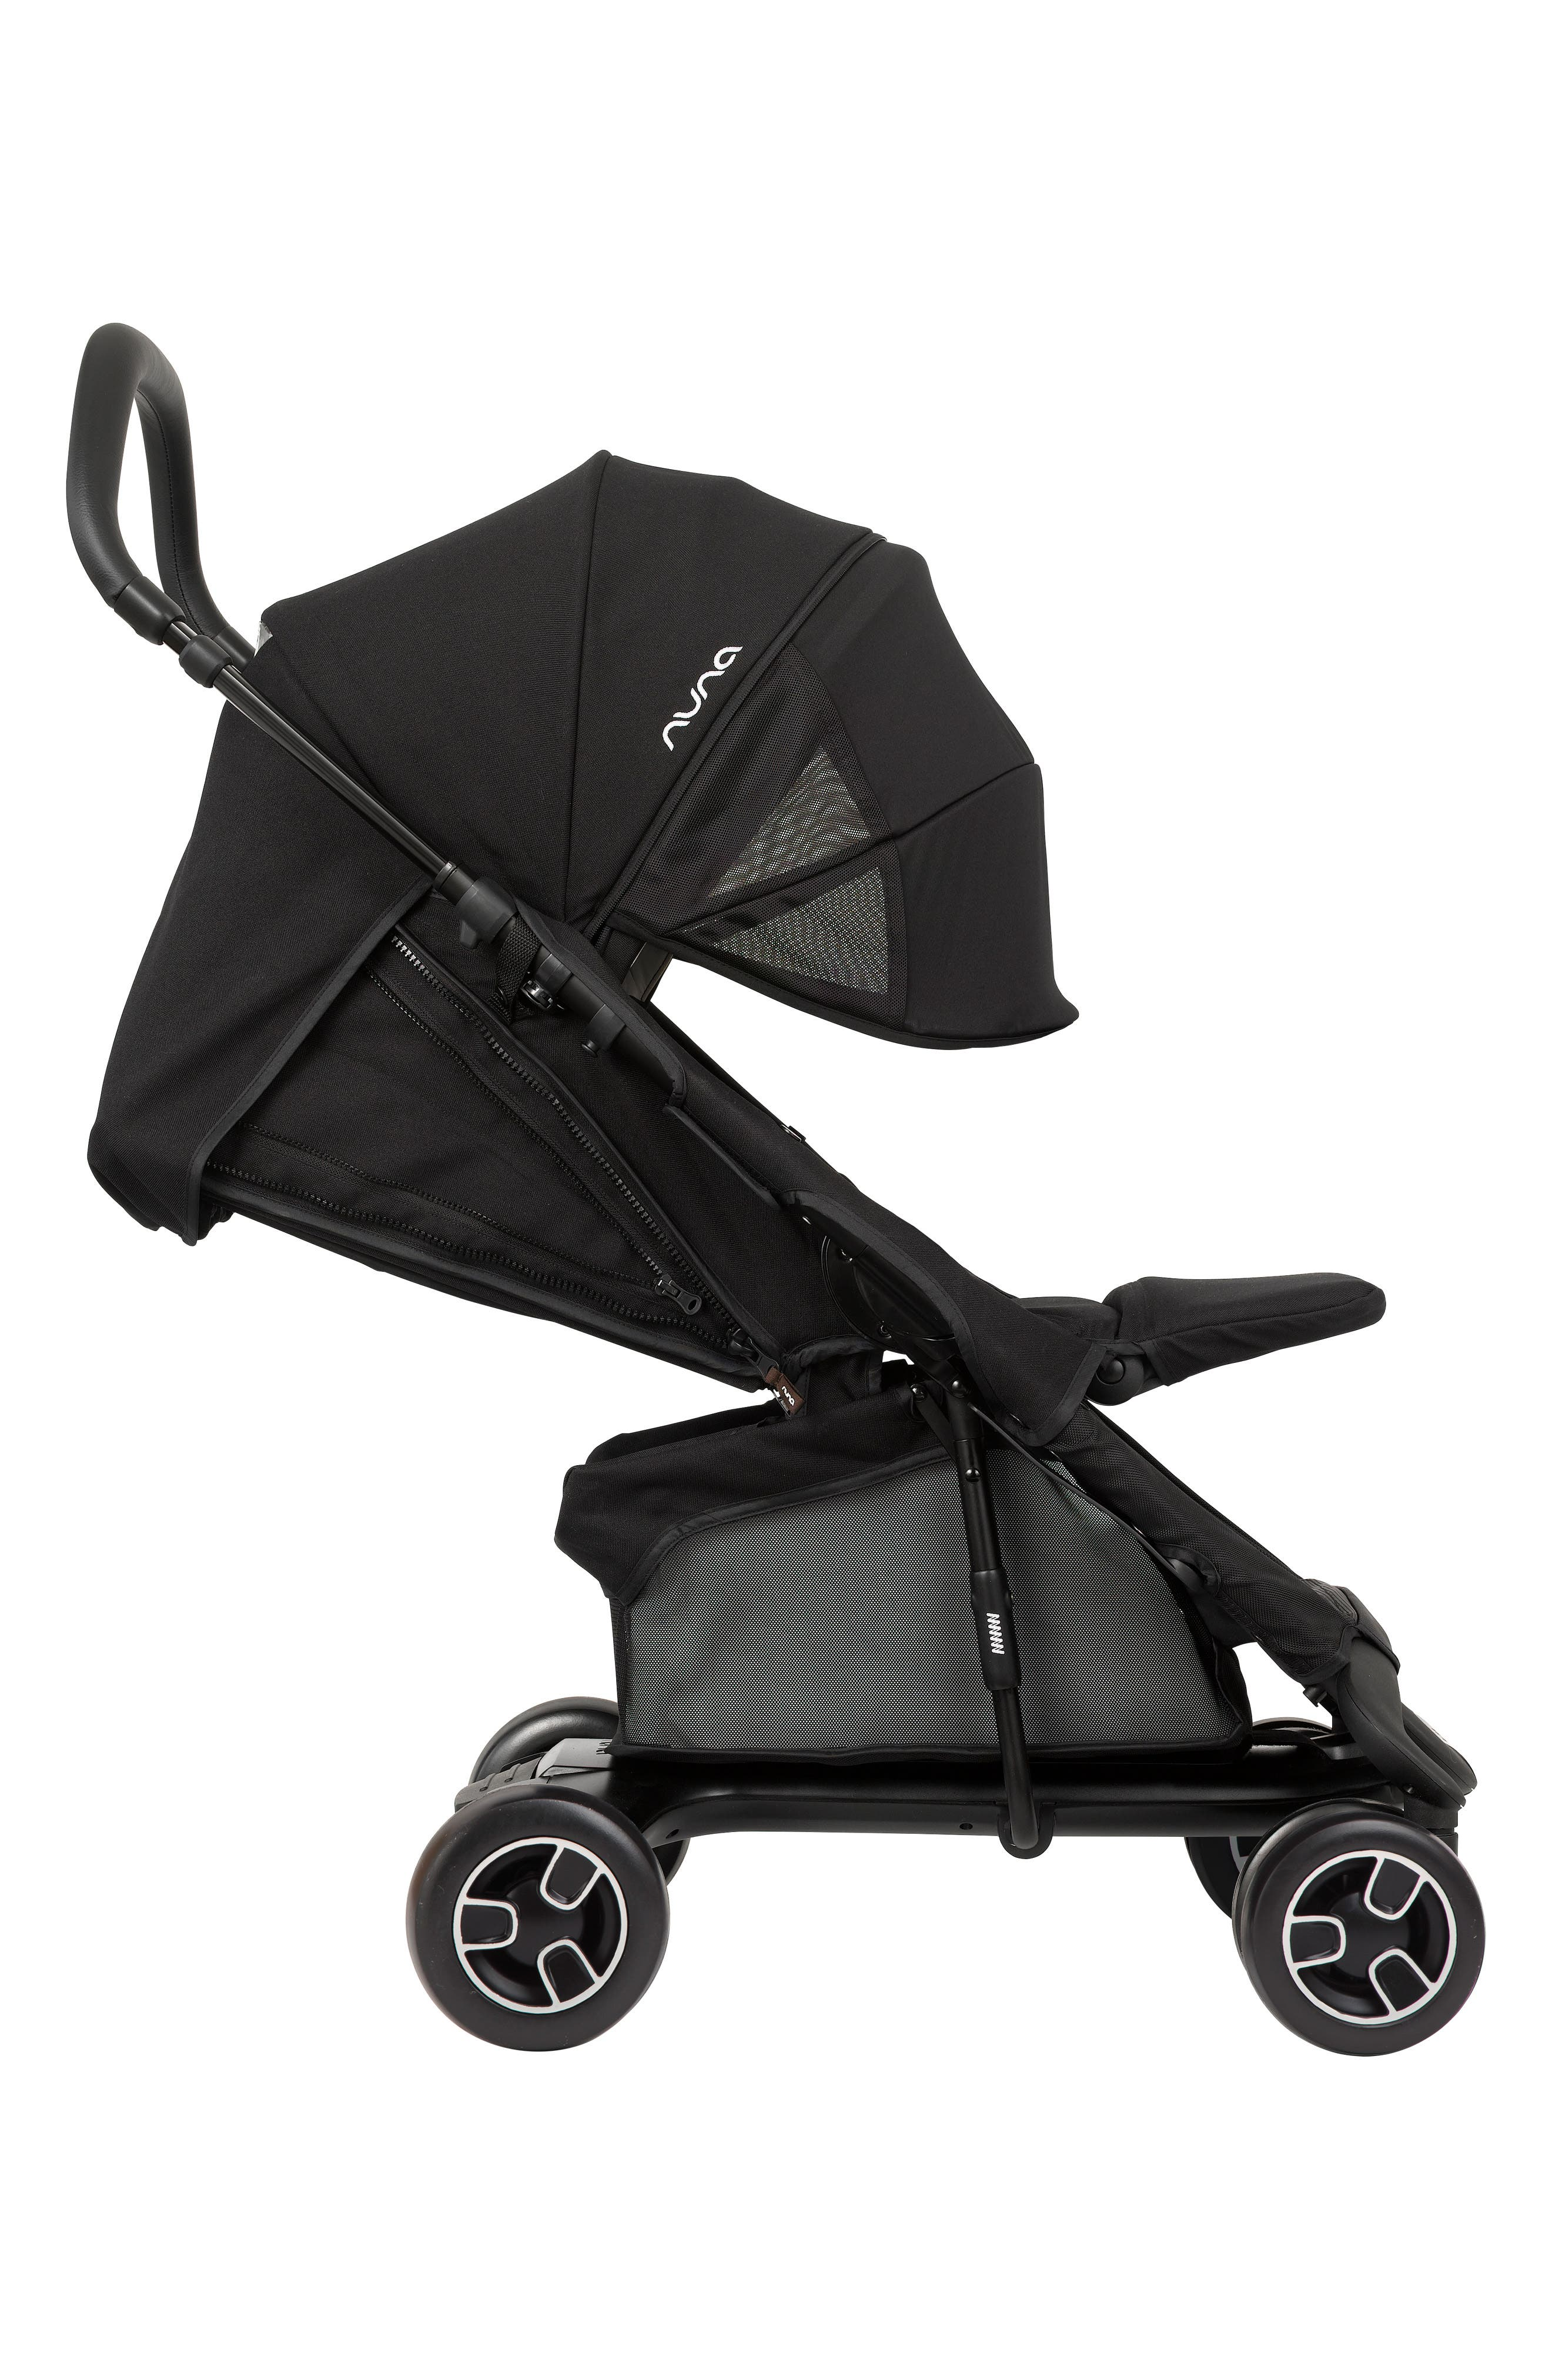 PEPP<sup>™</sup> Next Stroller,                             Alternate thumbnail 6, color,                             CAVIAR